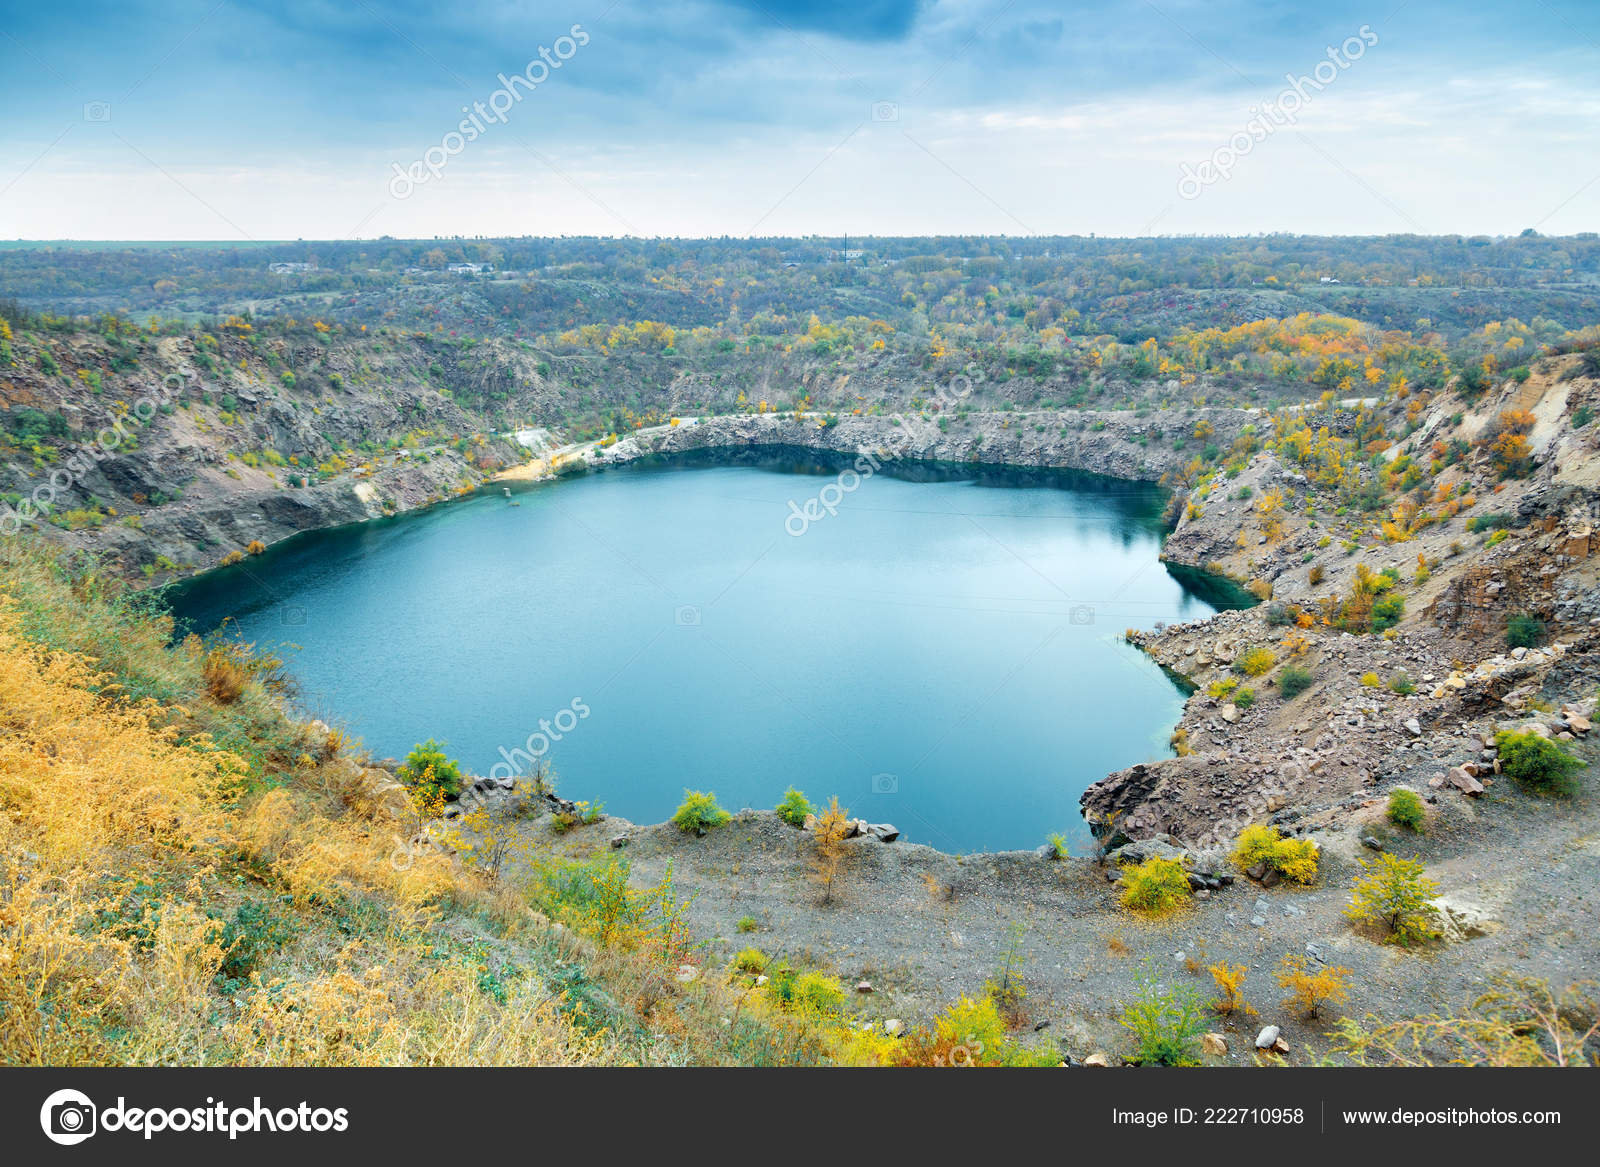 great radon blue lake stock photo batechenkofff 222710958